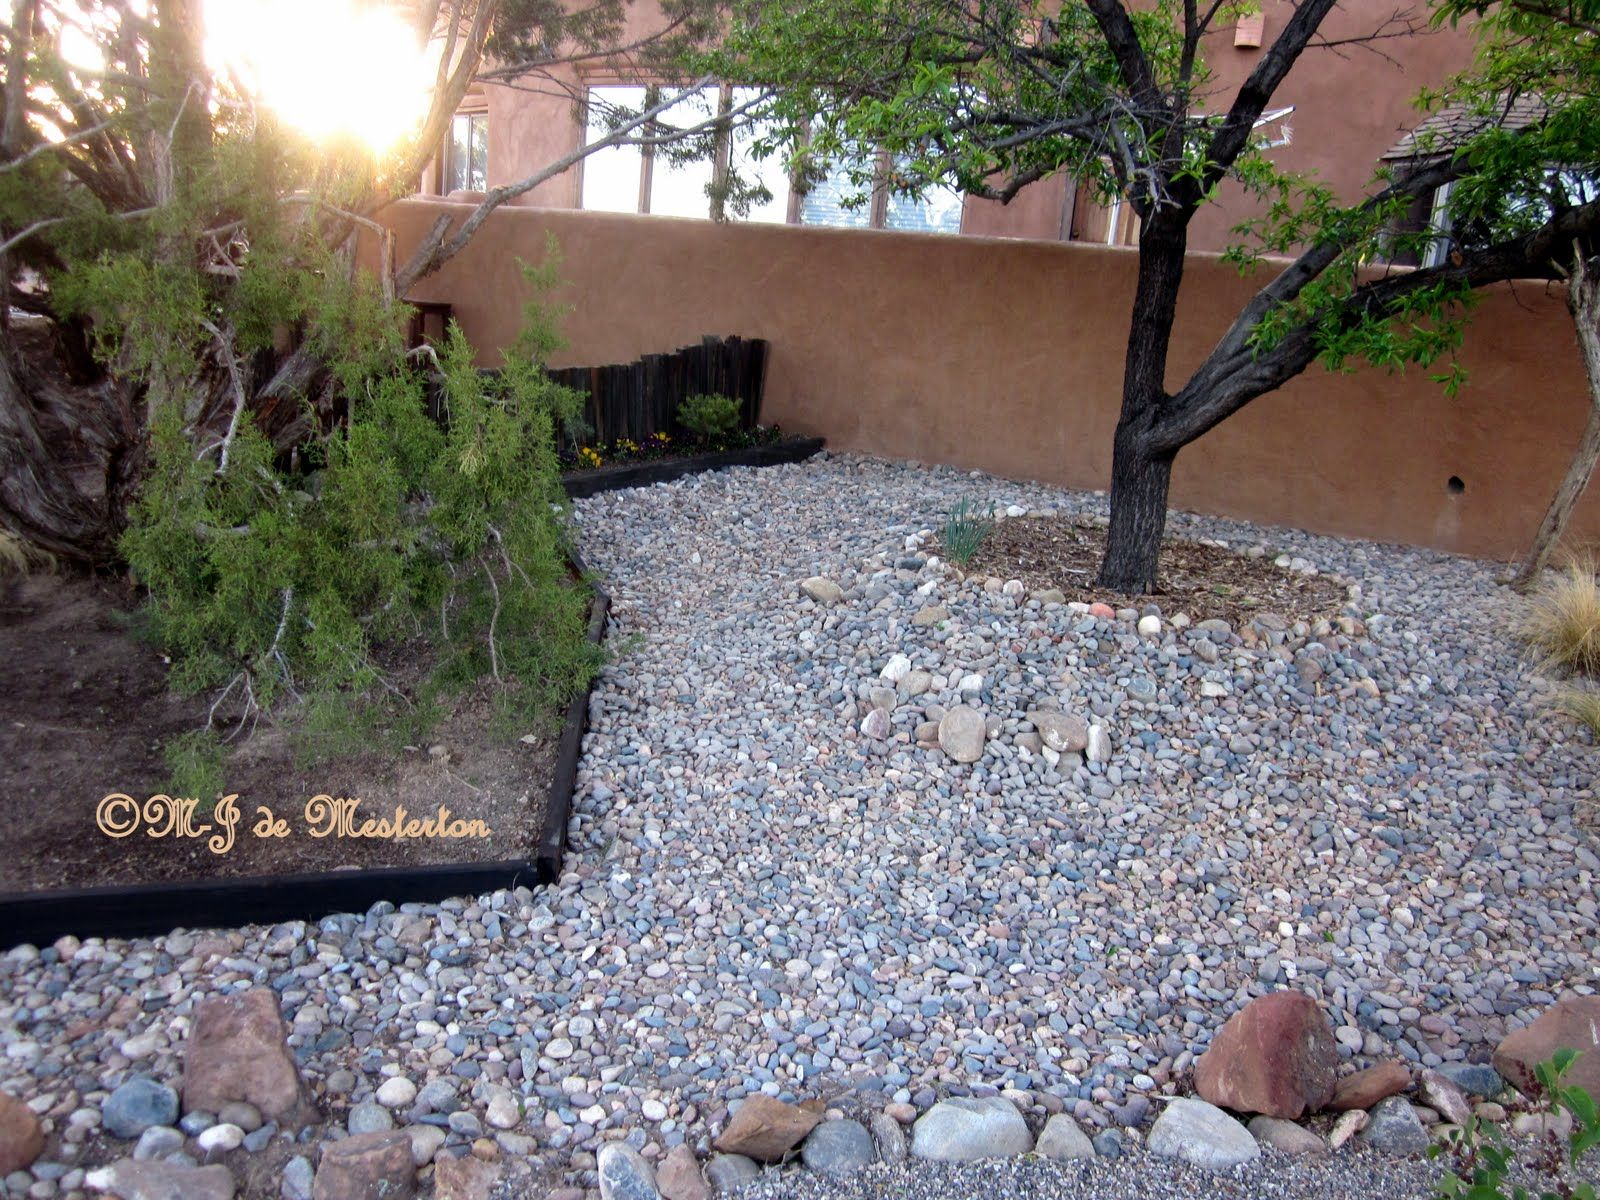 Landscaping gardening ideas gravel and grass for Rock landscaping ideas